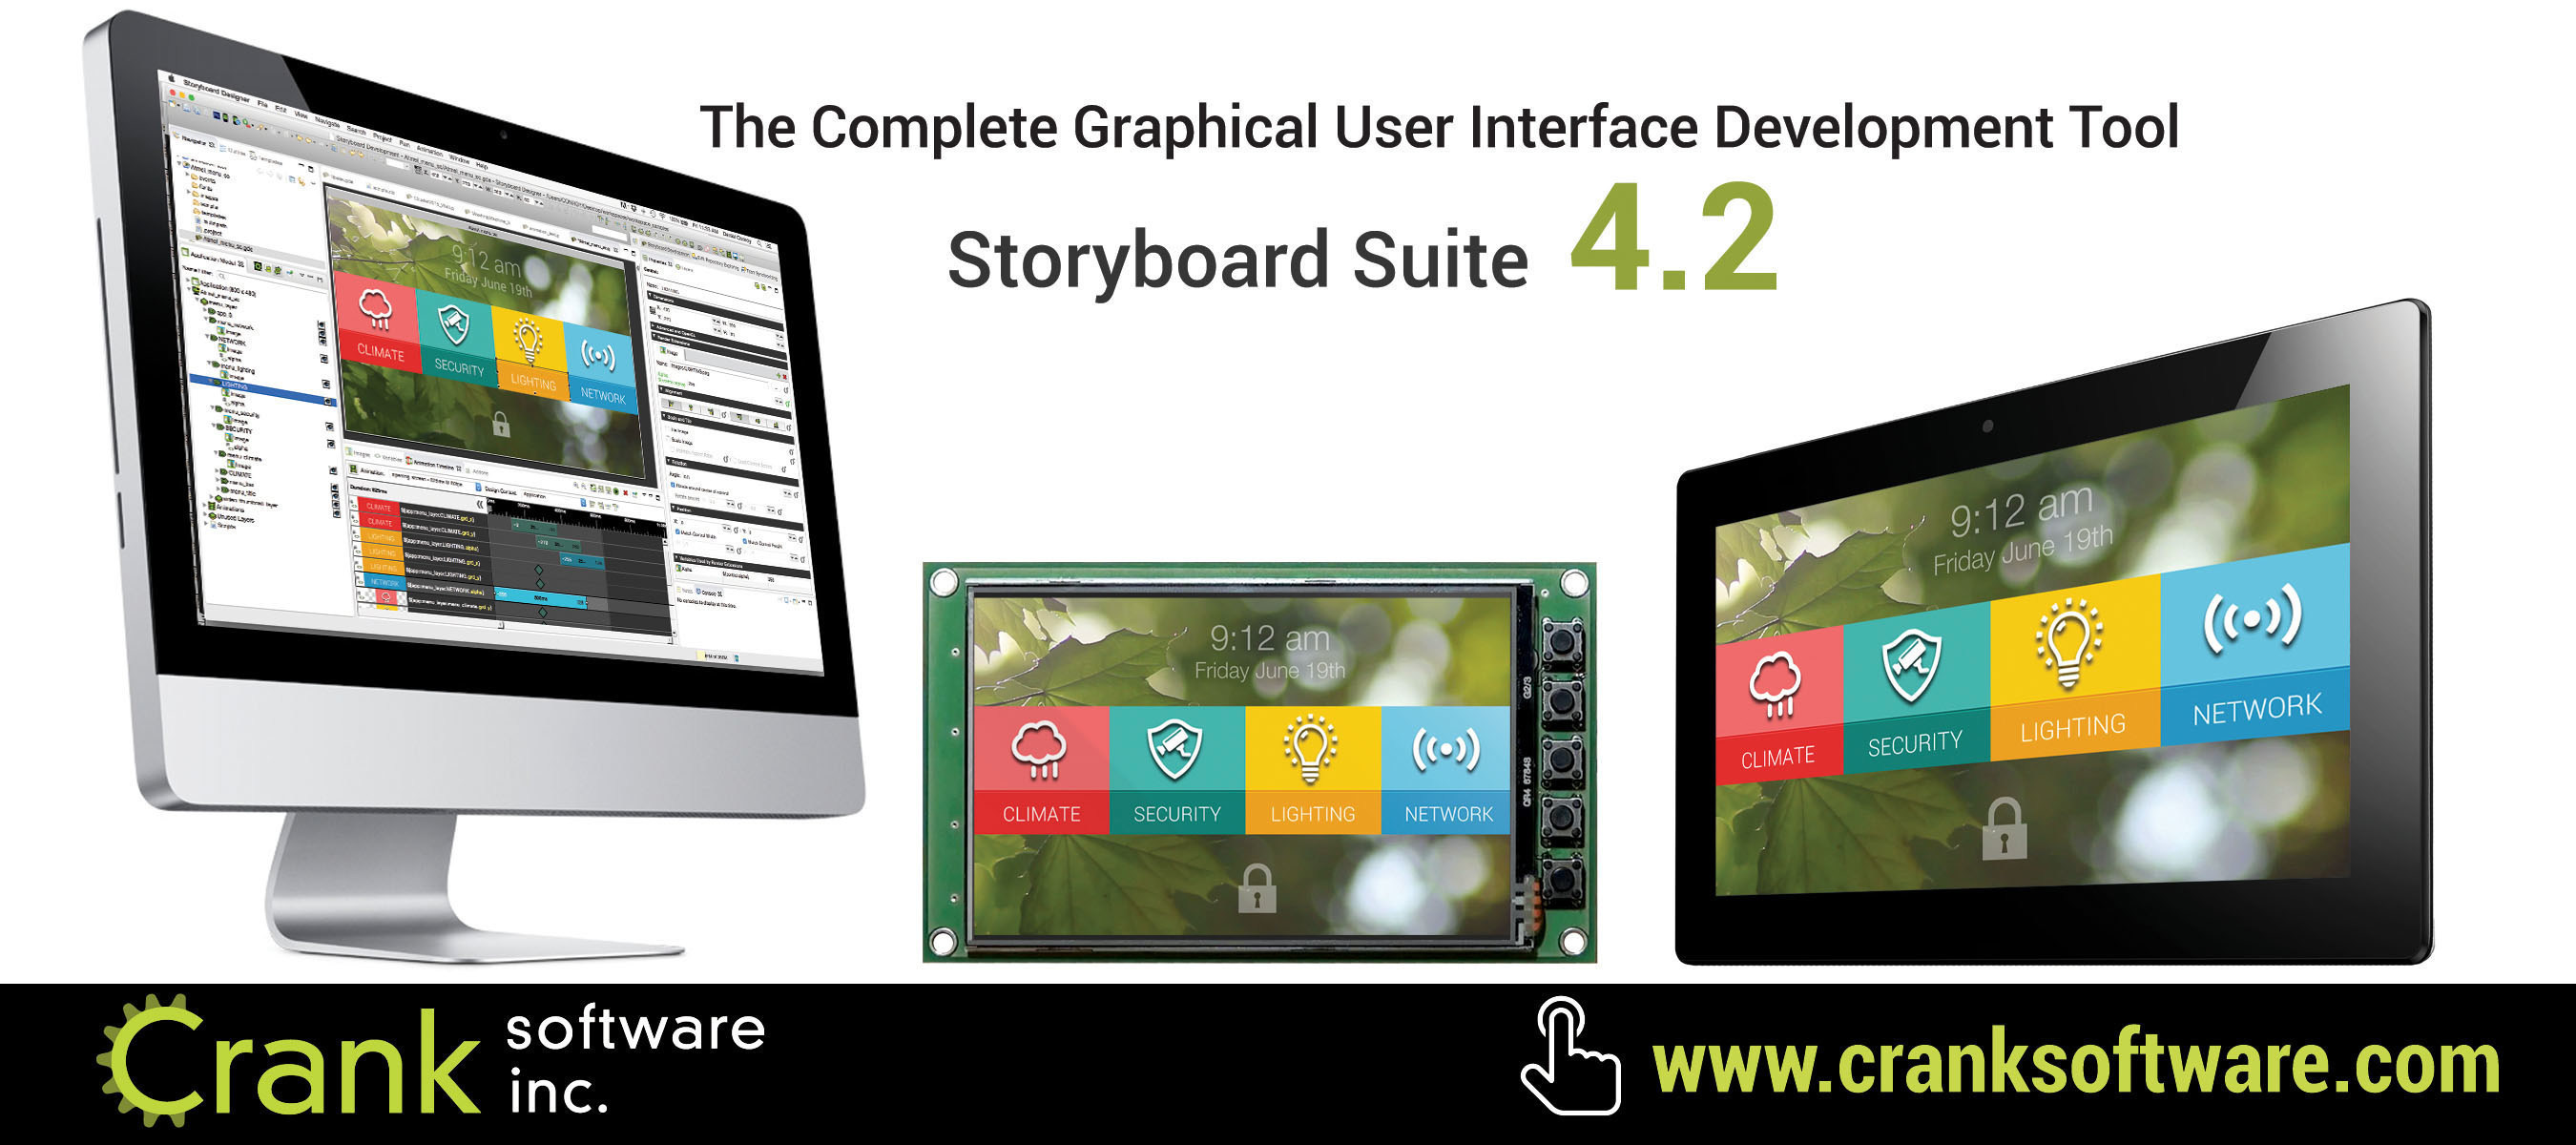 Crank Software Brings a New Level of Sophistication to Embedded UI Development with Storyboard